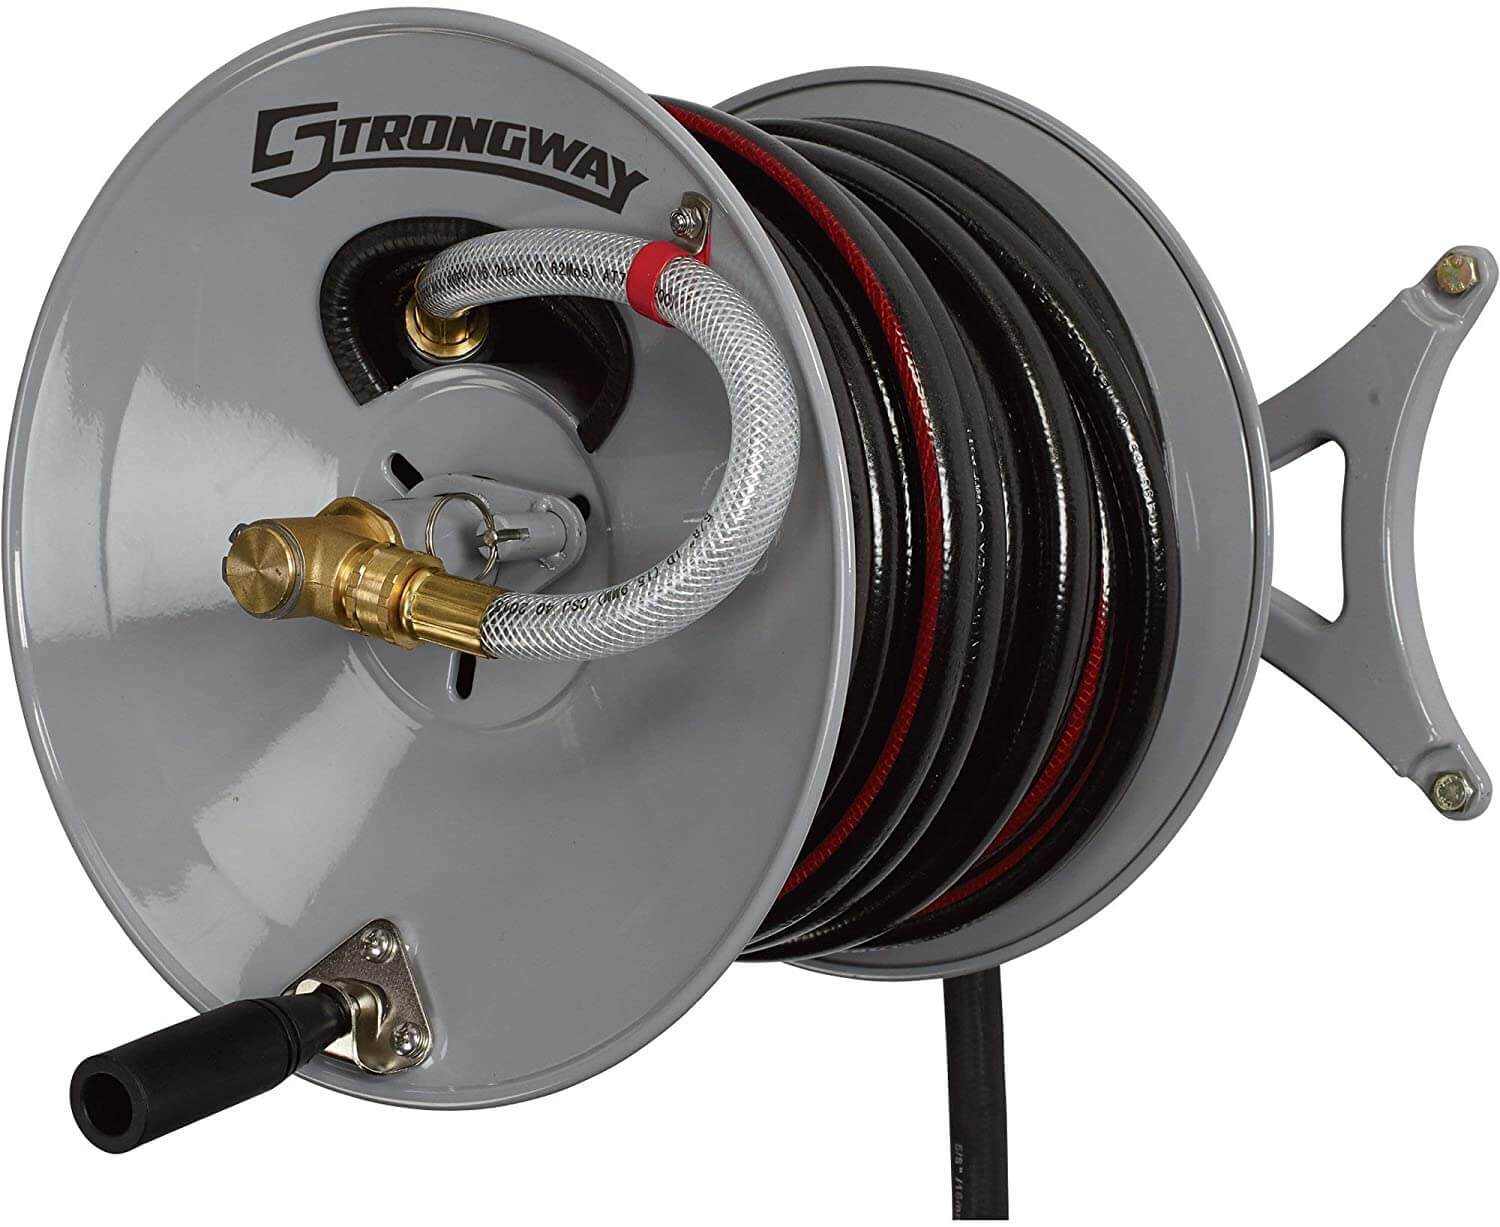 Strongway Parallel or Perpendicular Wall-Mount Garden Hose Reel - 150ft. Hose